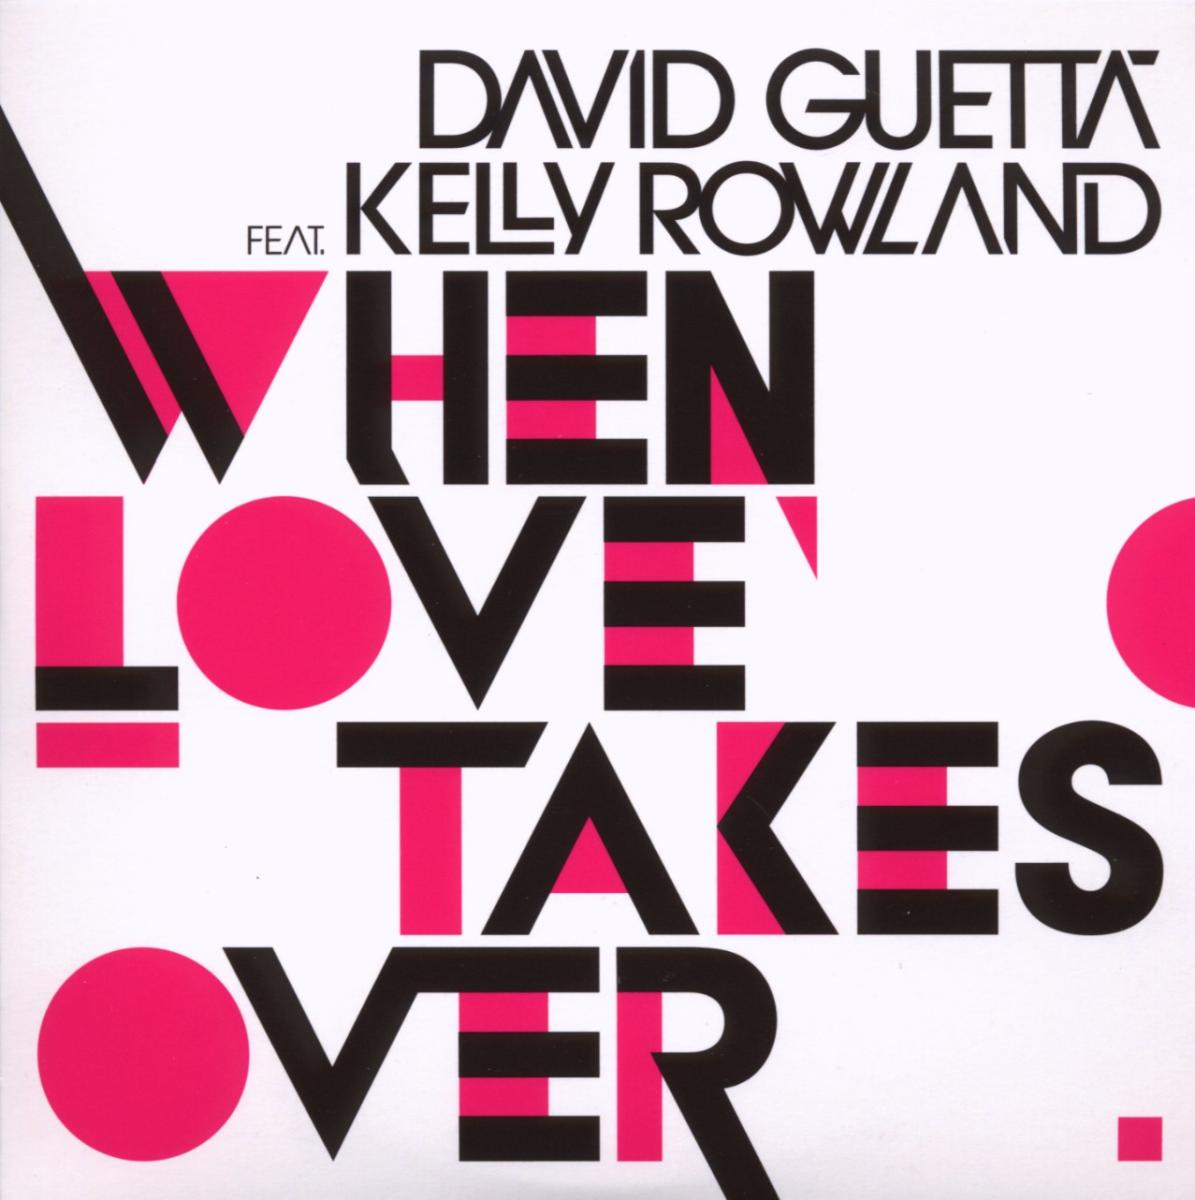 Cover: DAVID GUETTA FEAT. KELLY ROWLA, WHEN LOVE TAKES OVER